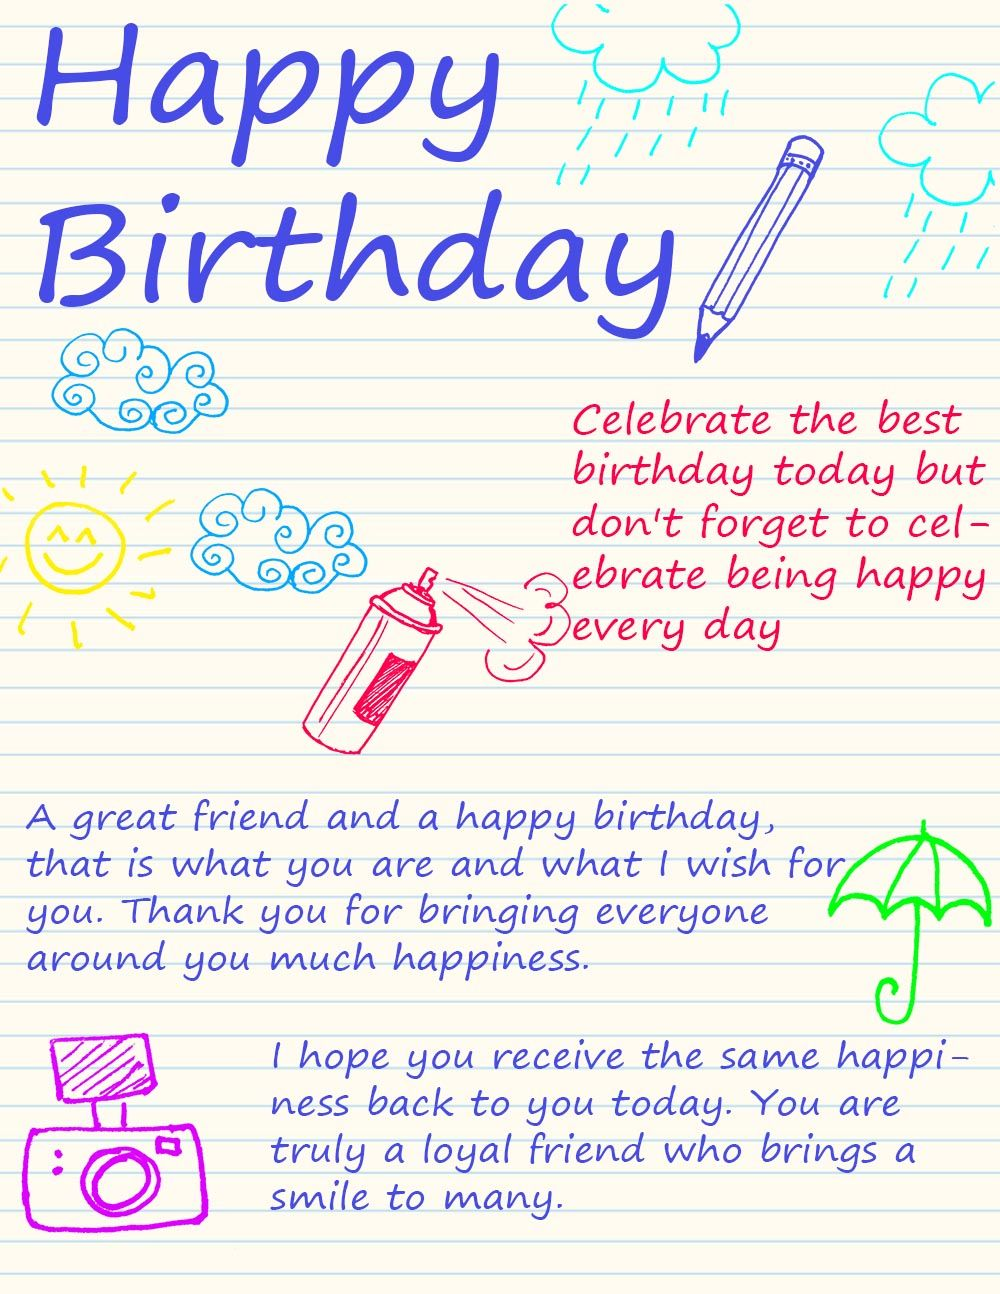 Happy Birthday Ecards Friend birthday quotes funny